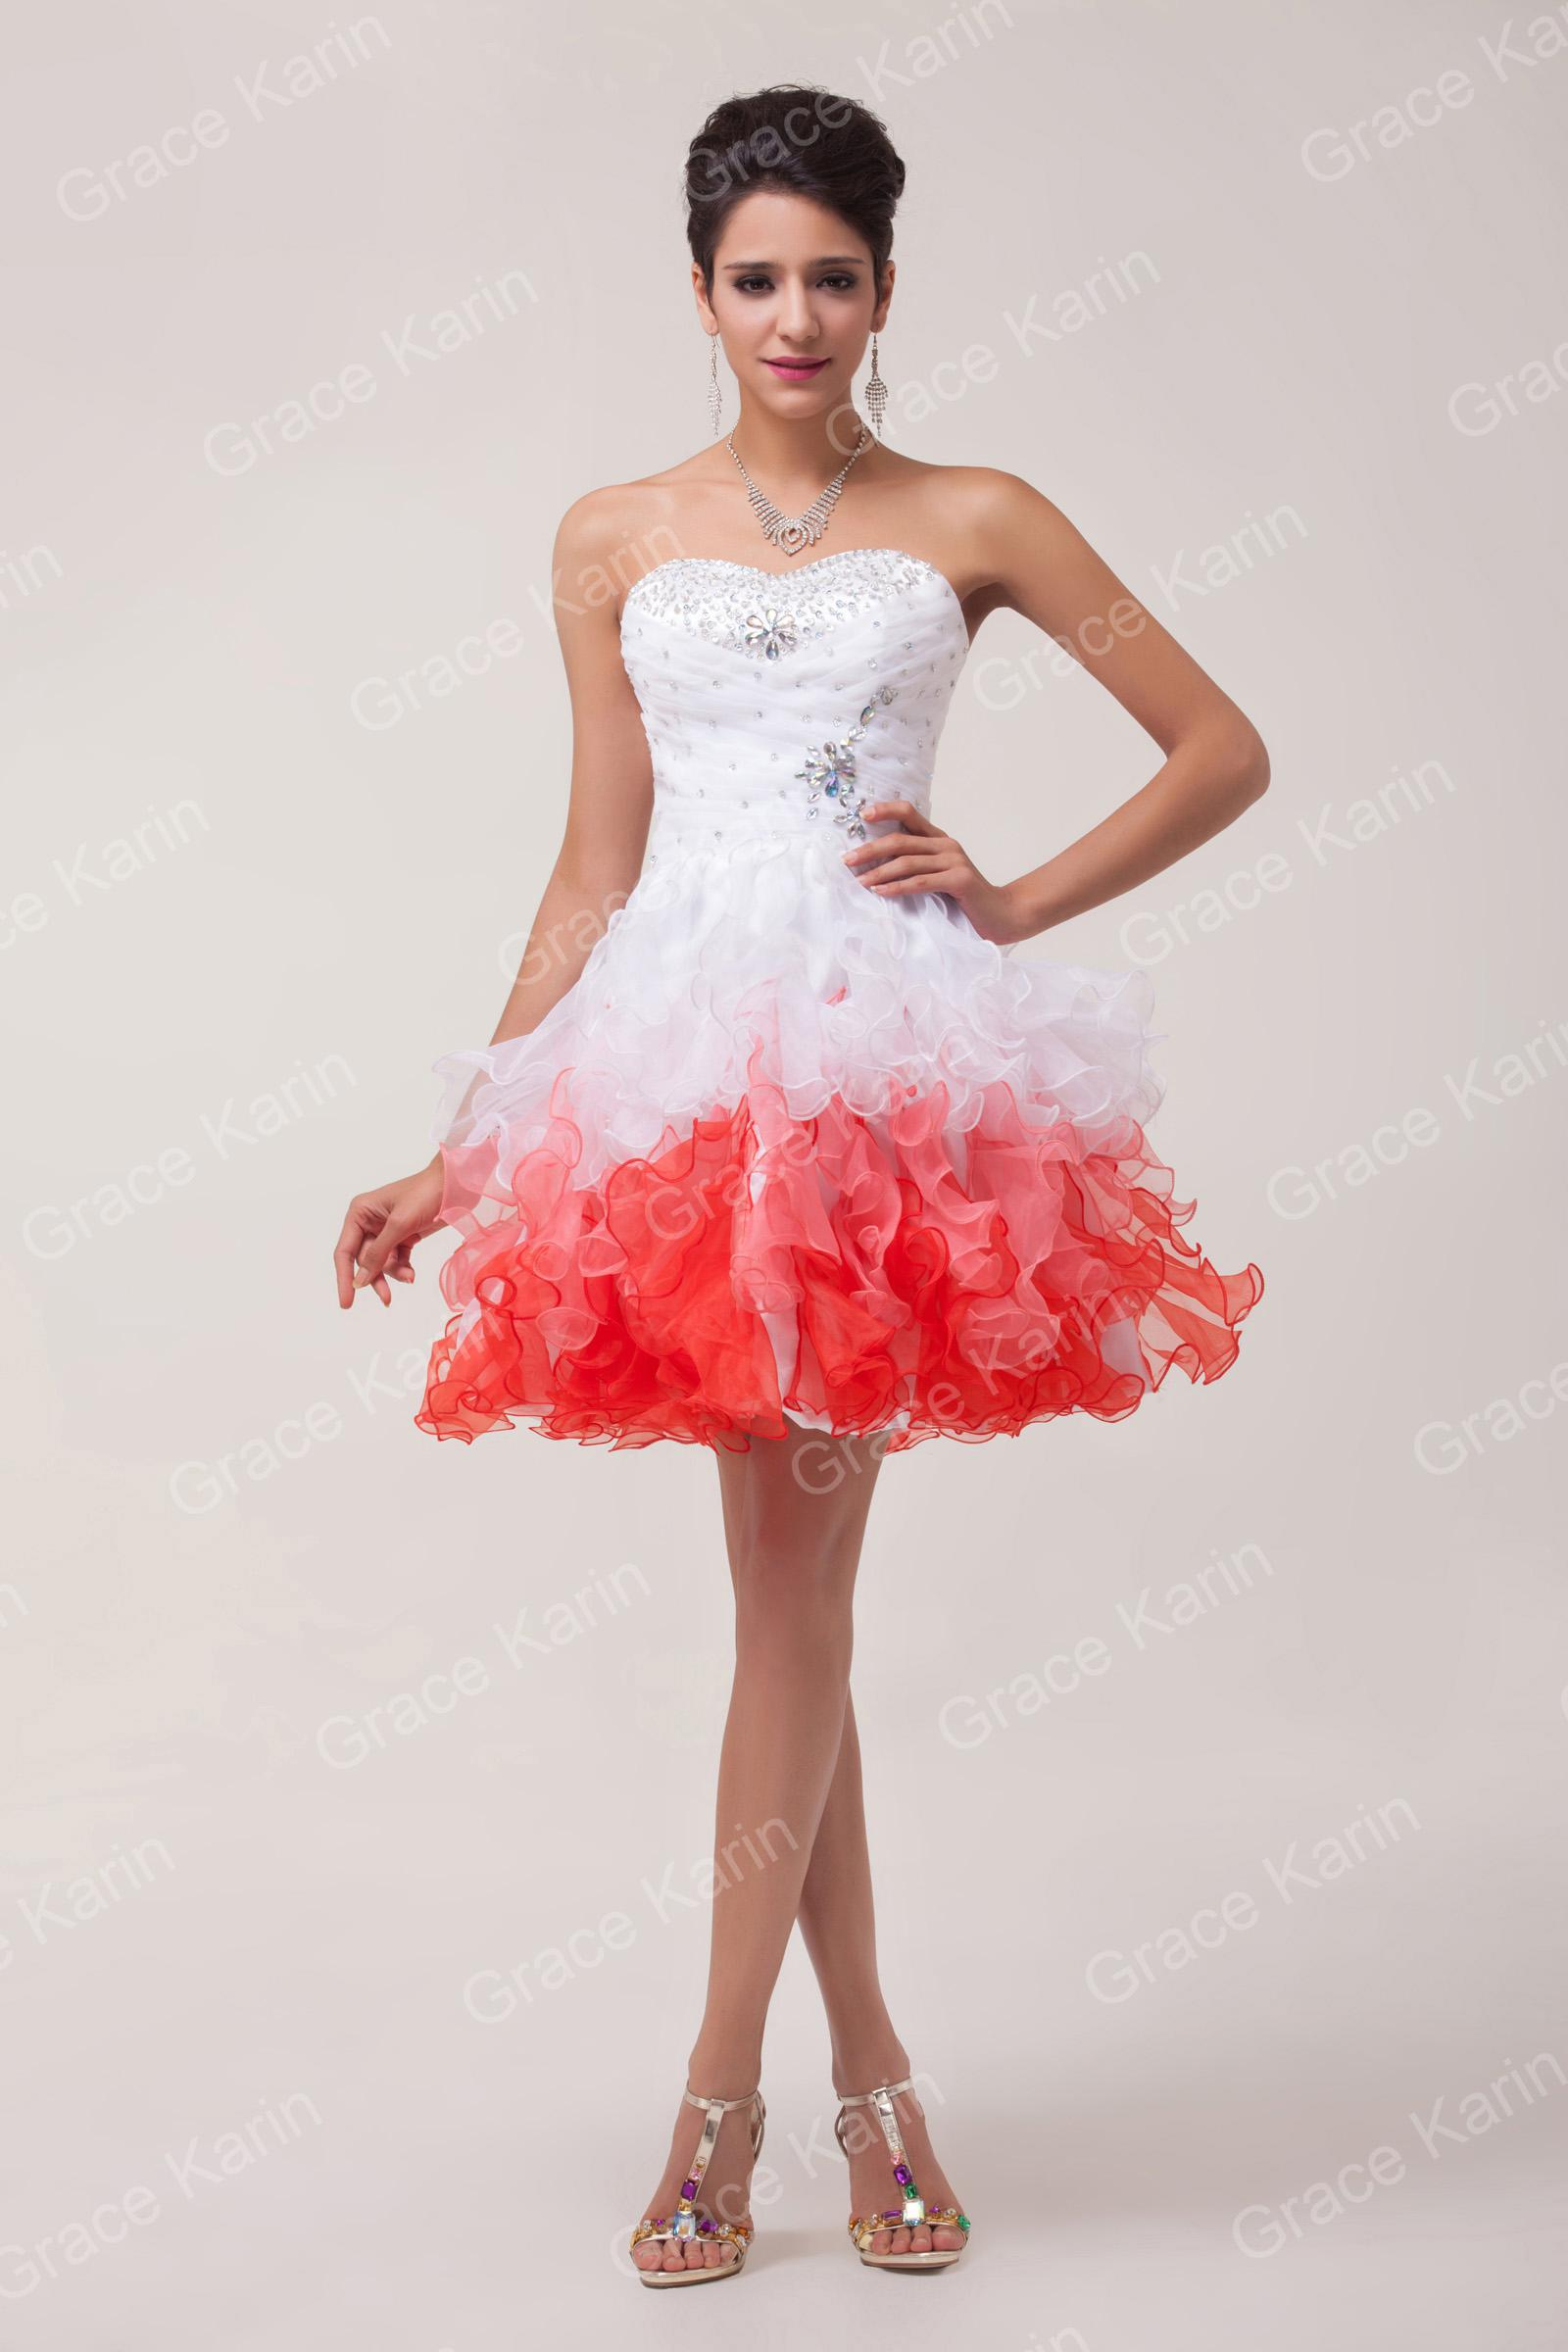 Grace karin 2014 quinceanera short tutu prom dress formal for Short red and white wedding dresses